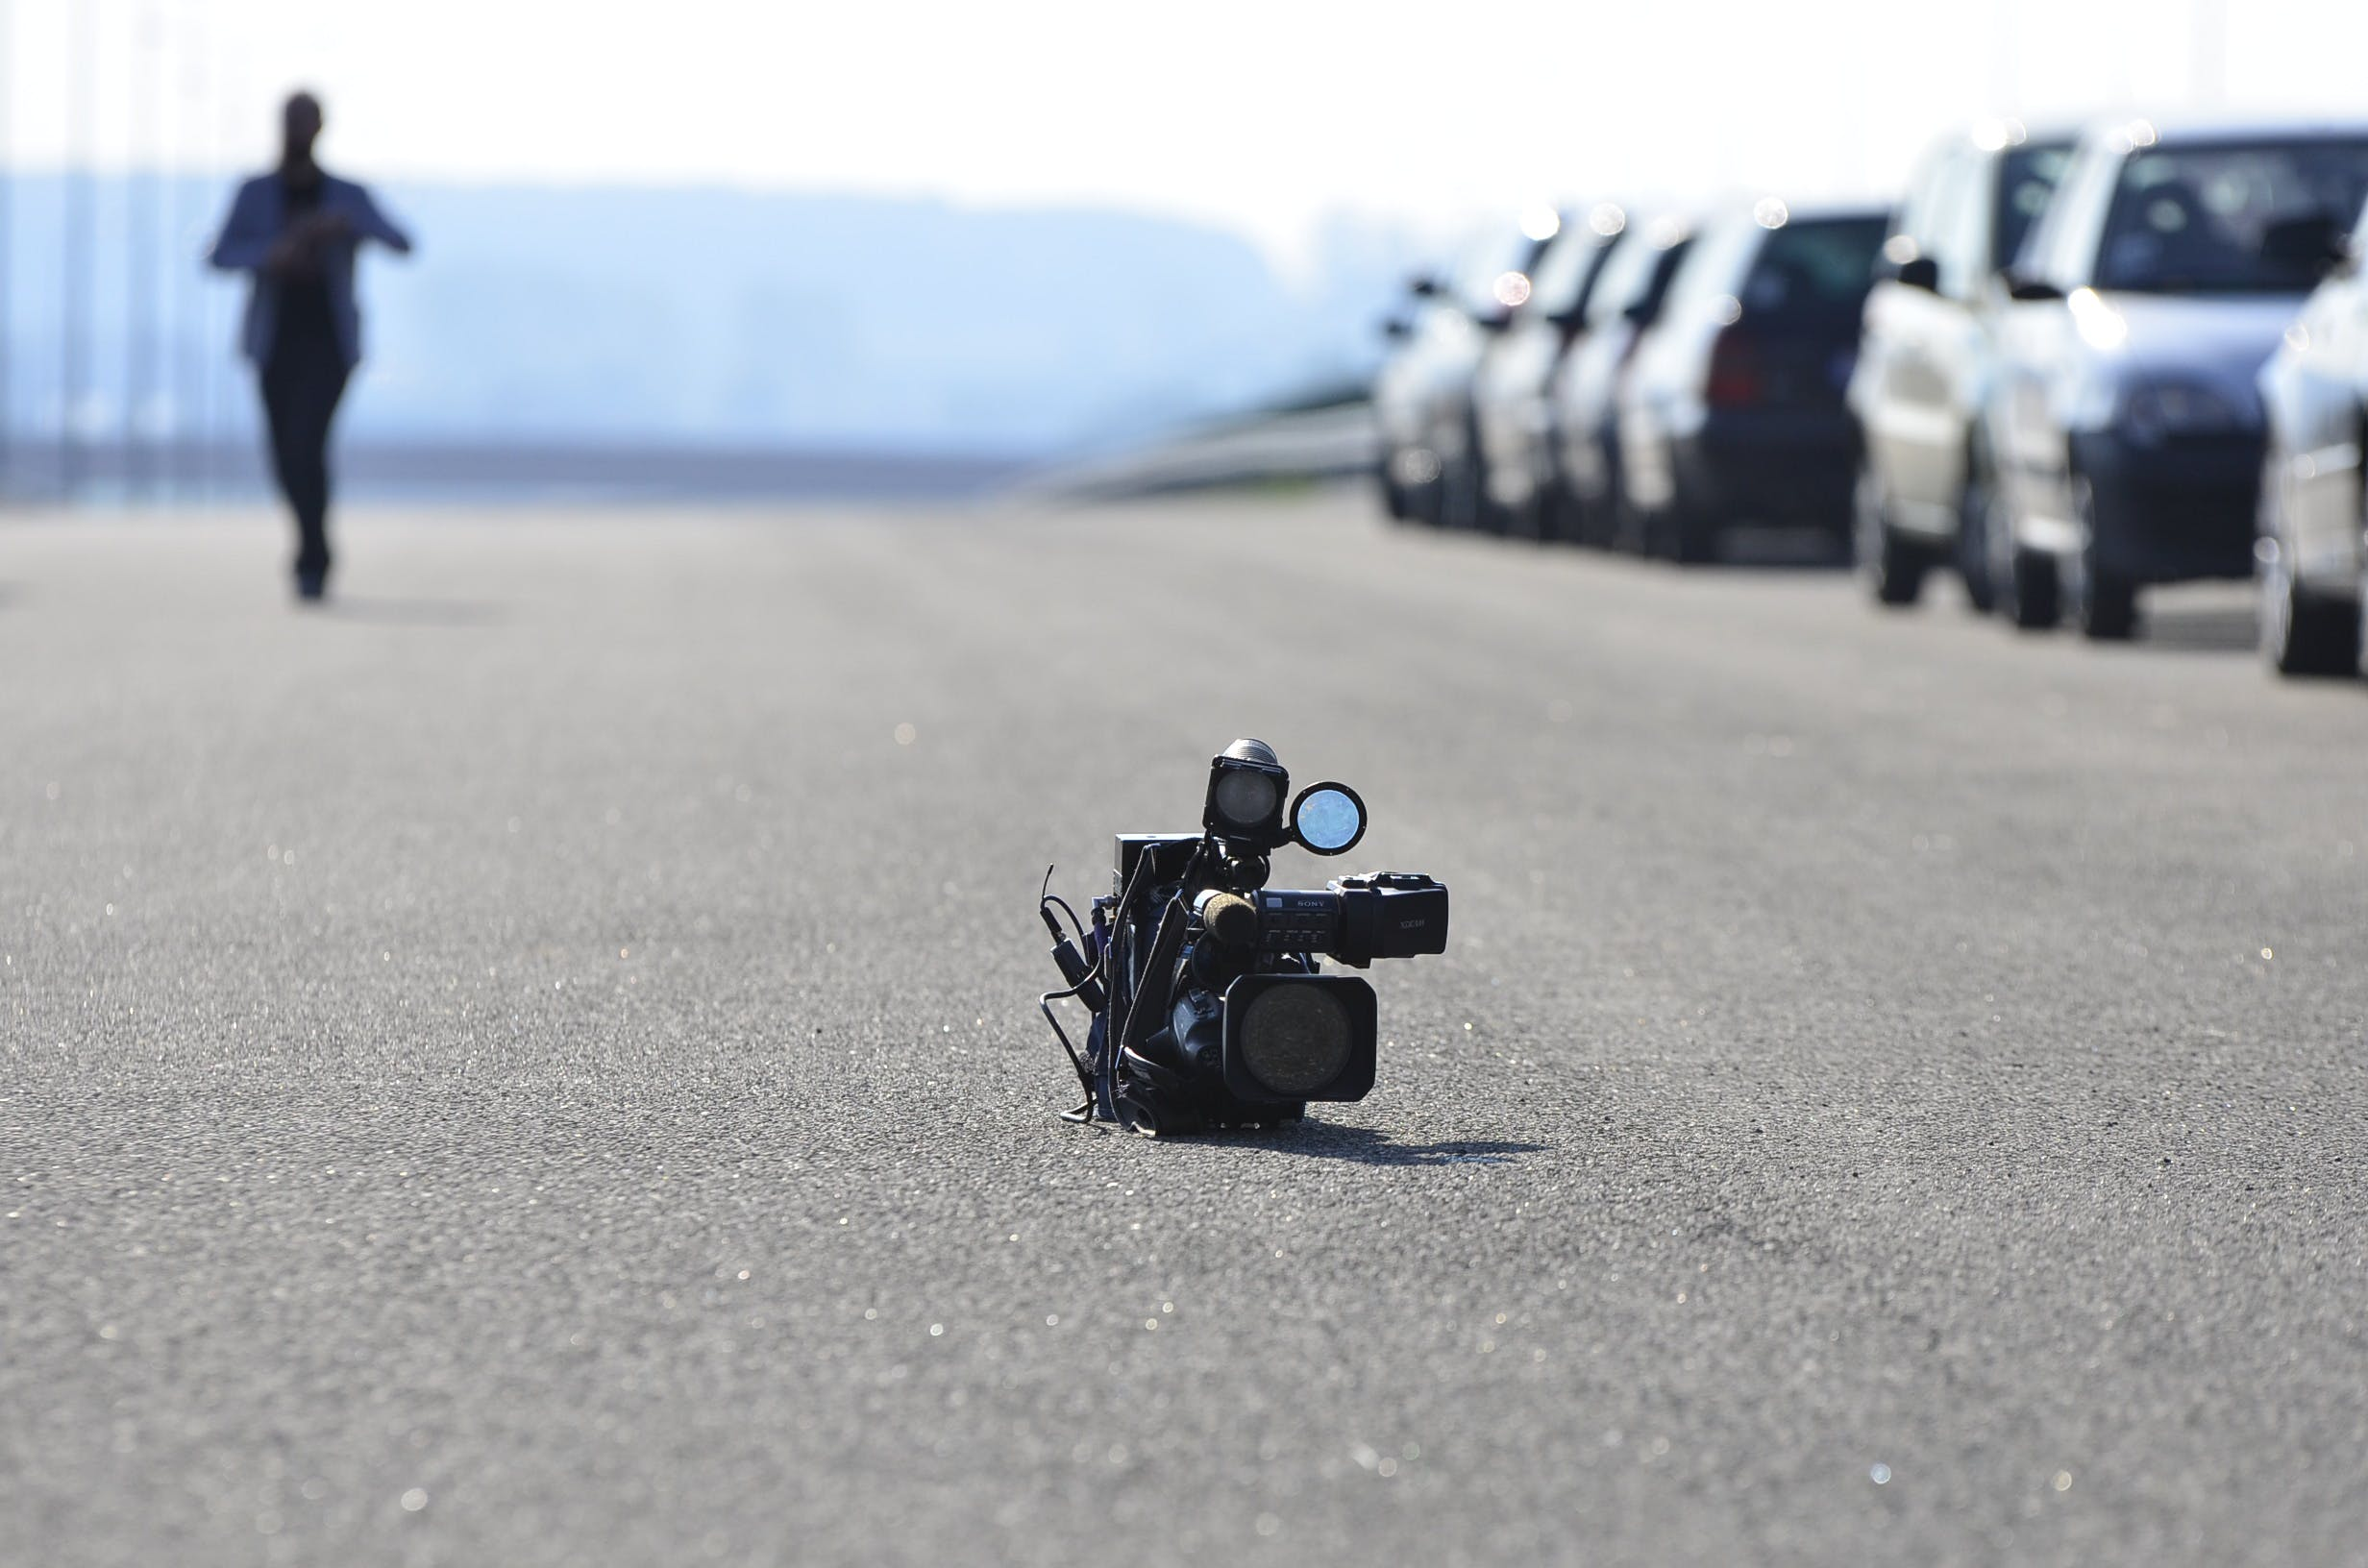 Video Camera on Asphalt Road